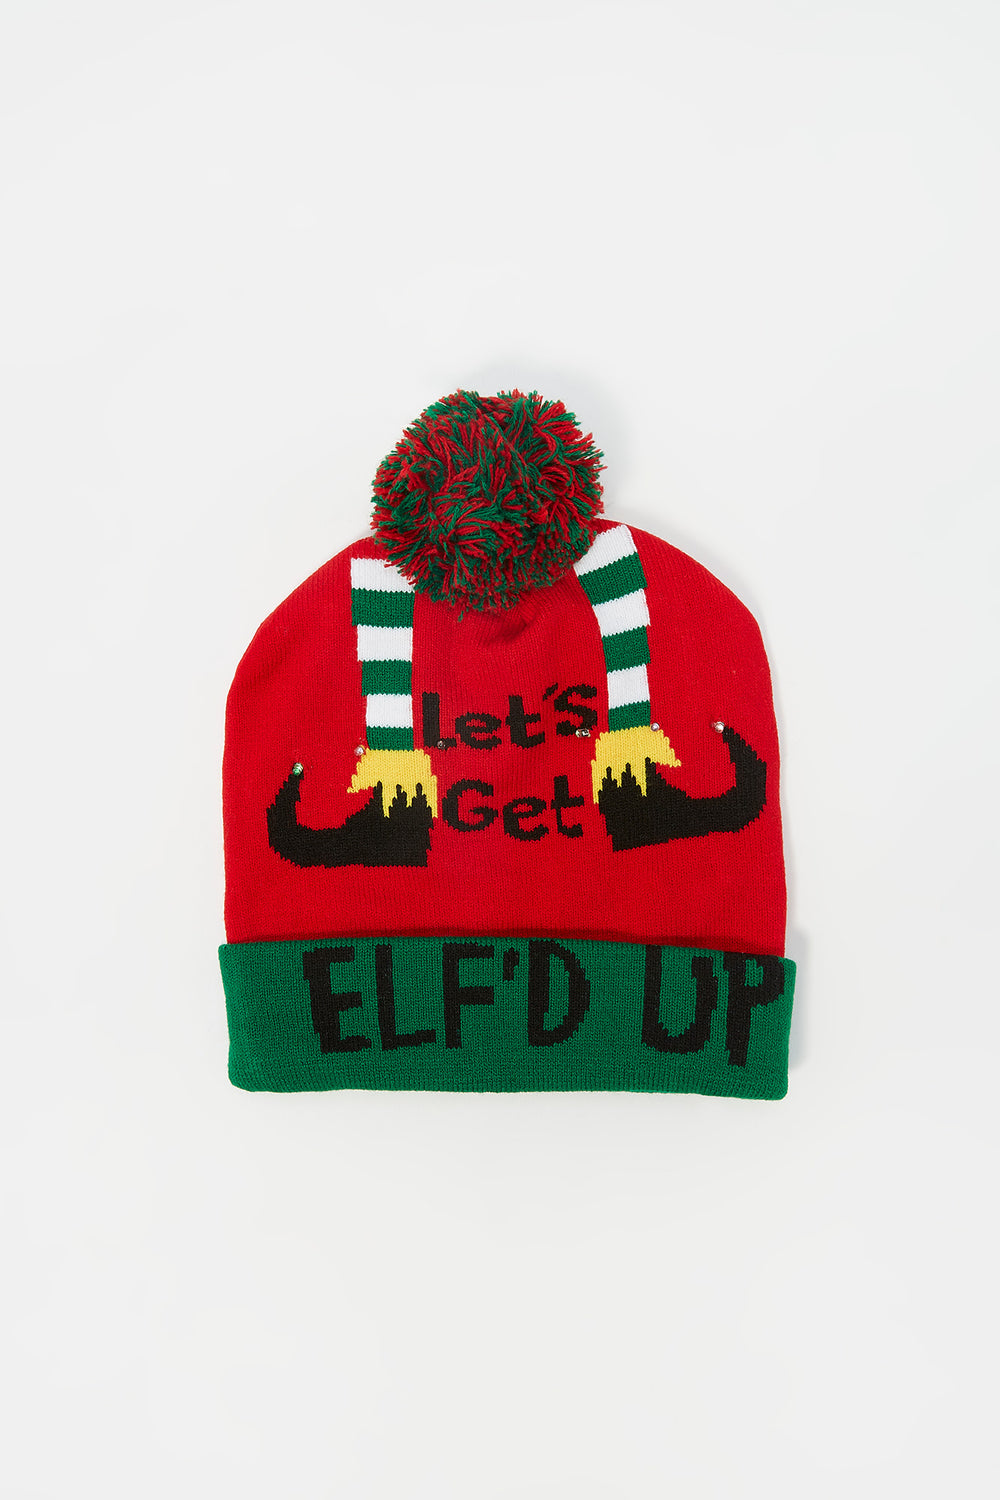 Youth Light-Up Graphic Elf'd Up Ugly Christmas Beanie Assorted